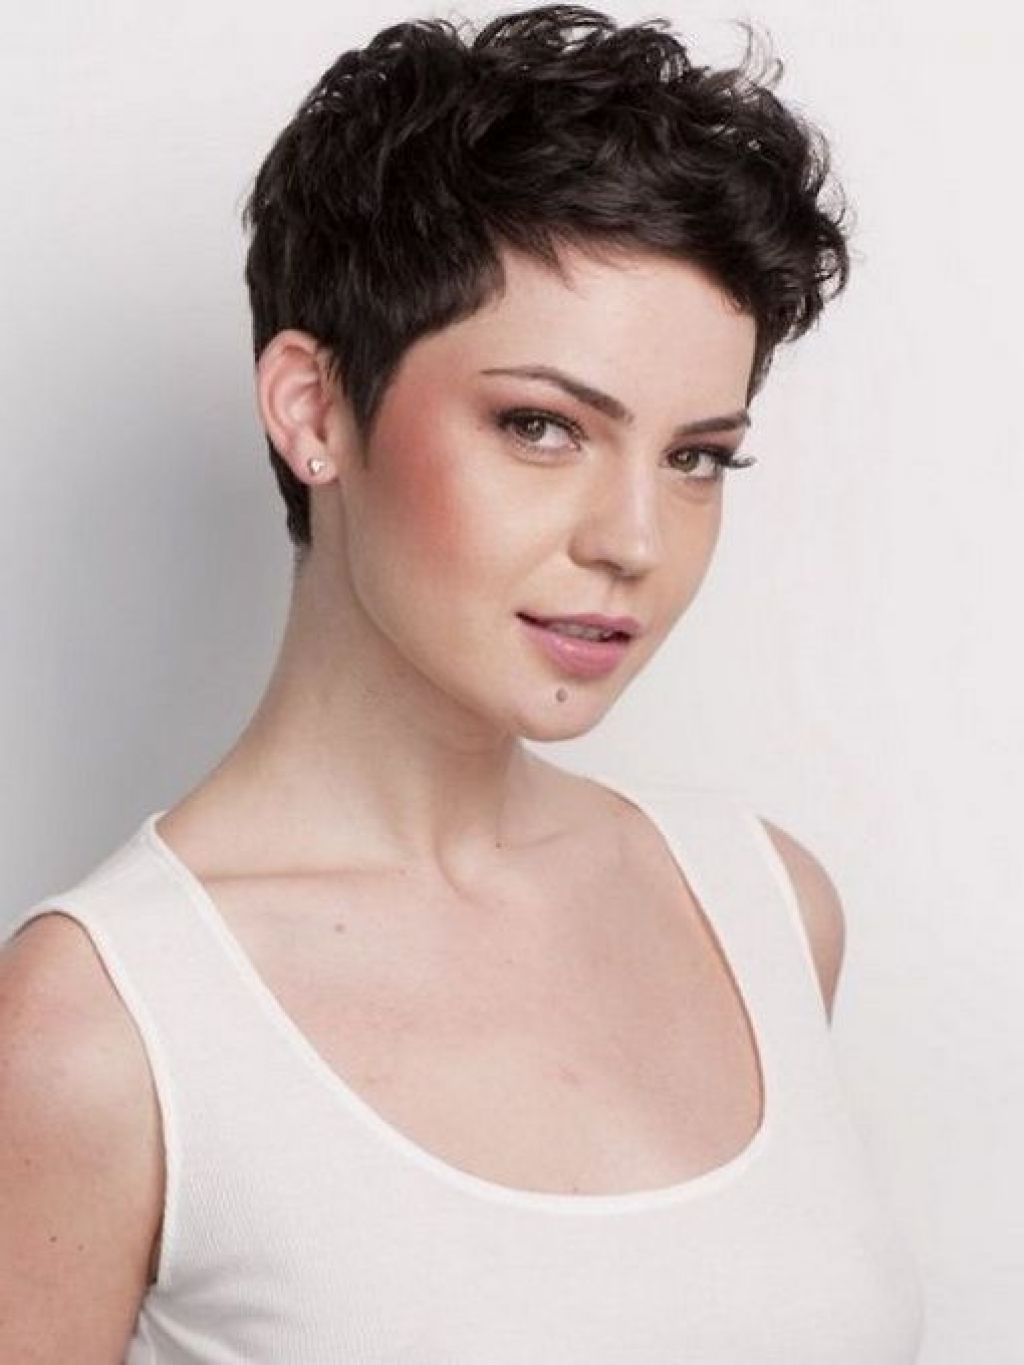 Short curly pixie haircuts styles pinterest curly pixie short curly pixie haircuts winobraniefo Gallery